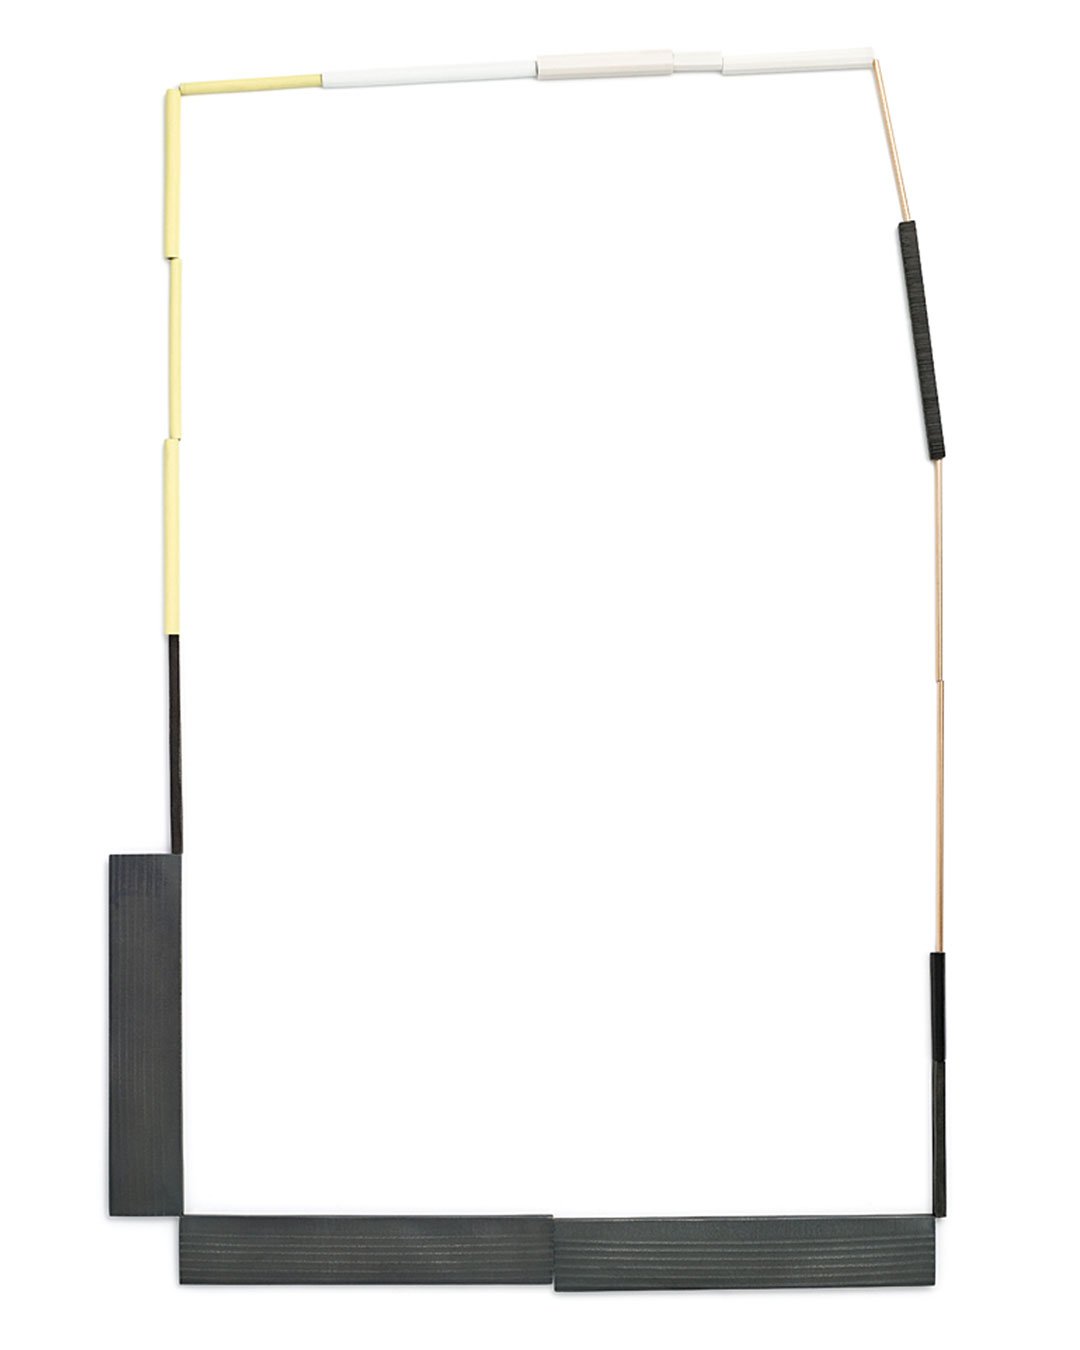 Karin Johansson, New Places, 2011, necklace; gold, oxidised silver, enamel, reconstructed onyx and ivory, L 1100 mm, €1990